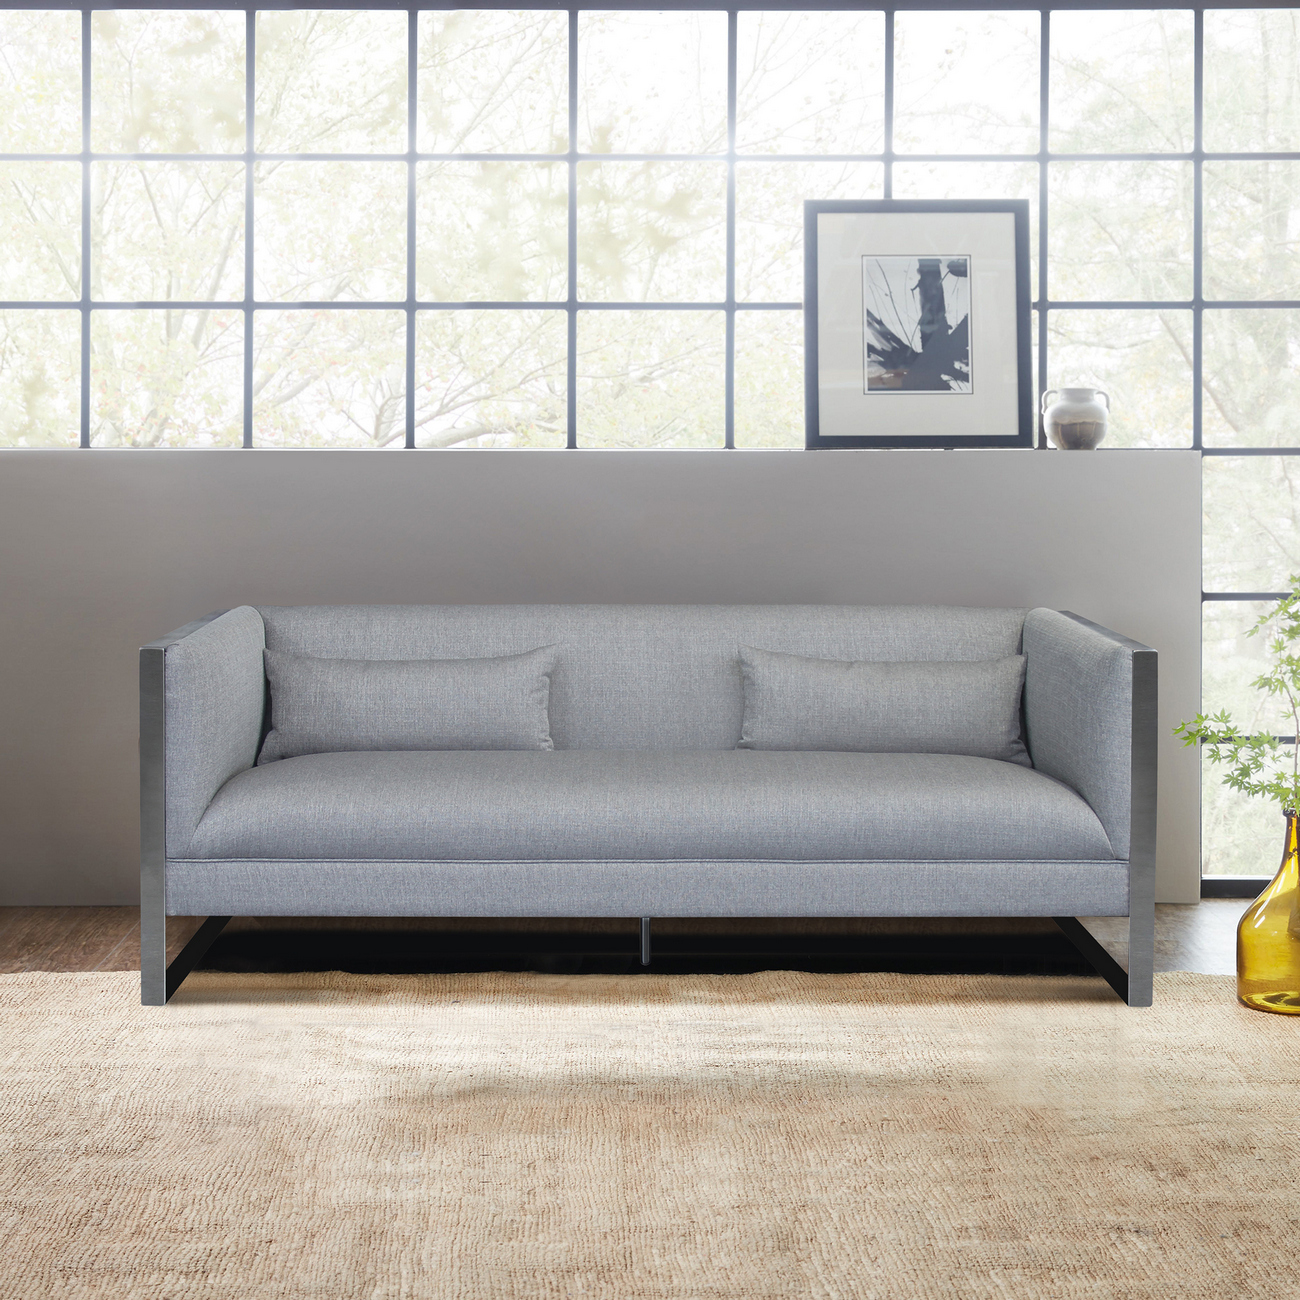 Armen Living Royce Contemporary Sofa Polished Stainless Steel Grey Fabric